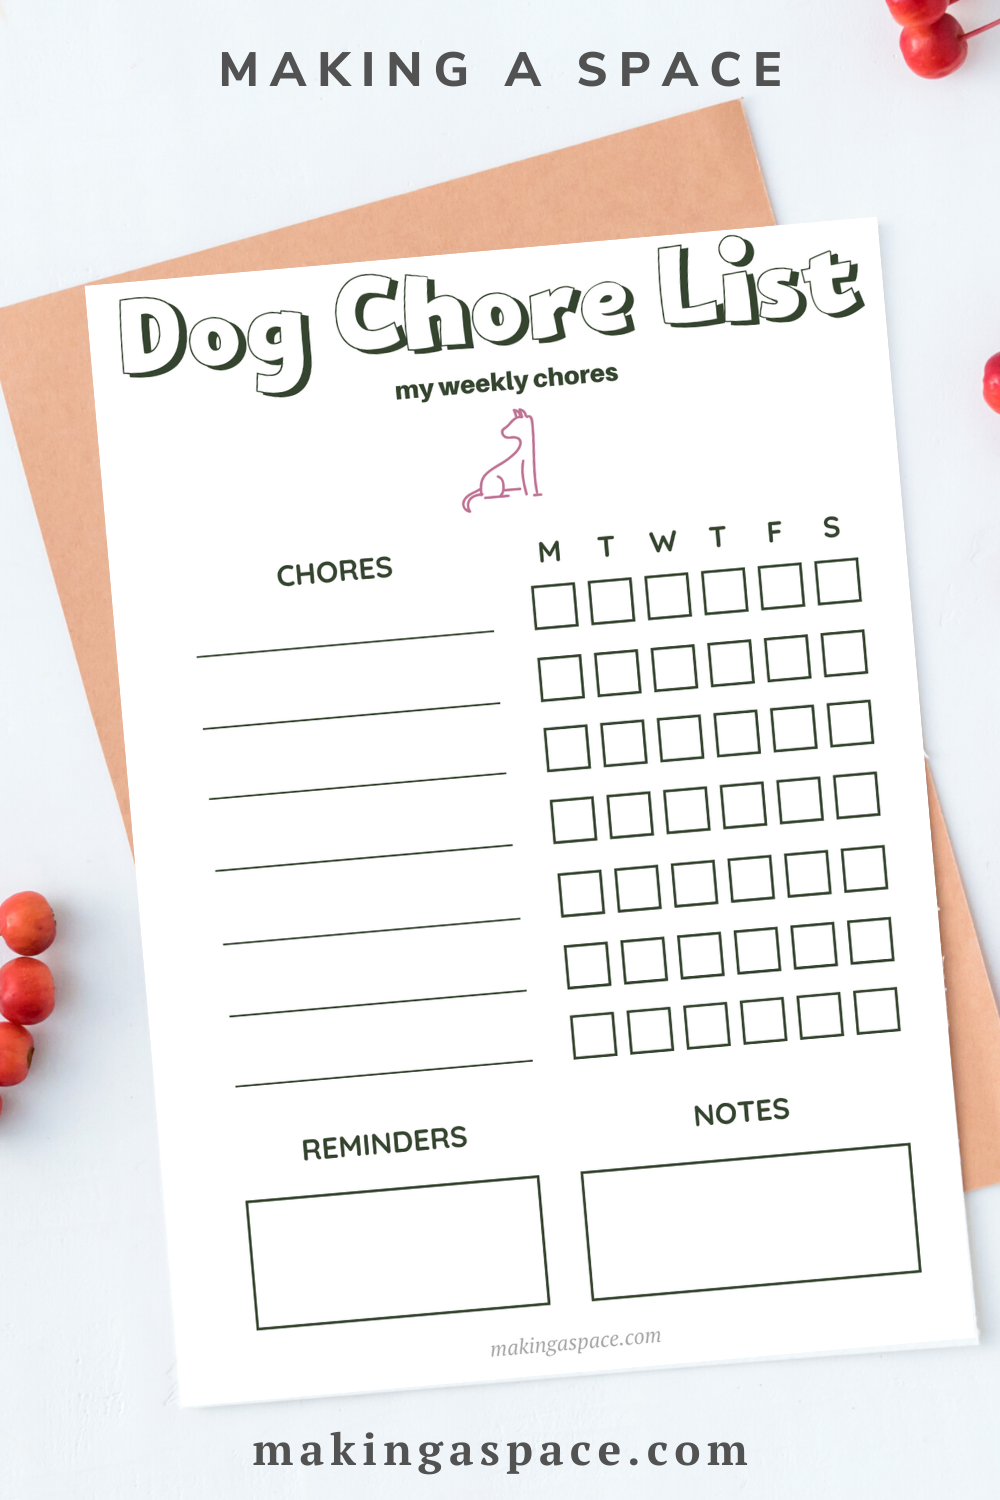 Dog Chore List Printable for Kids and Family